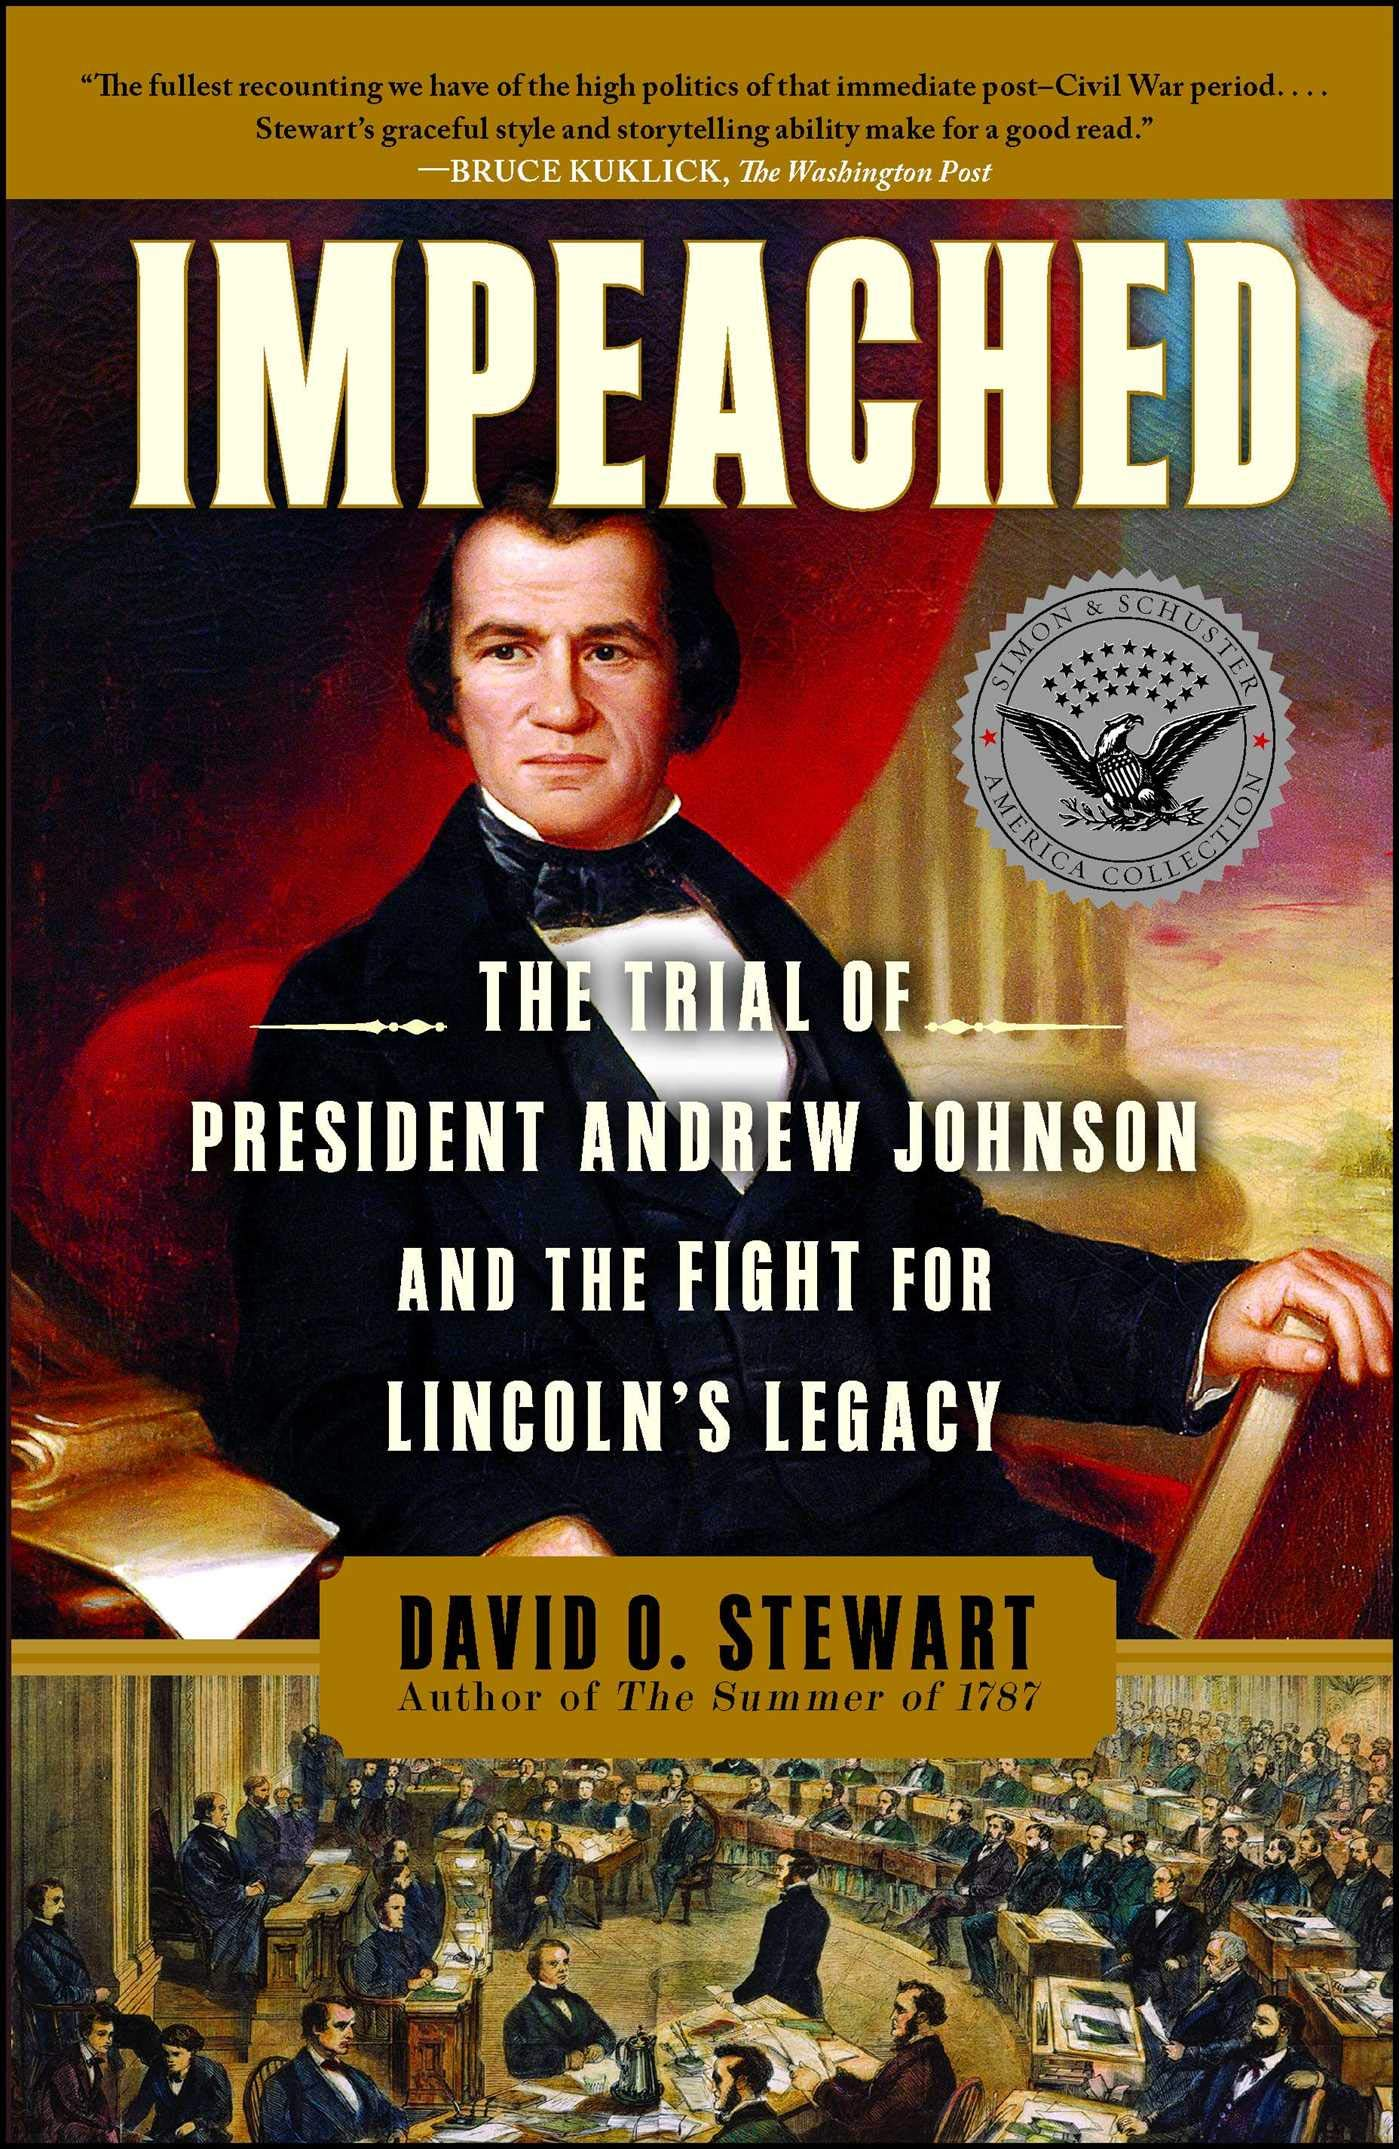 was the impeachment of president johnson justified